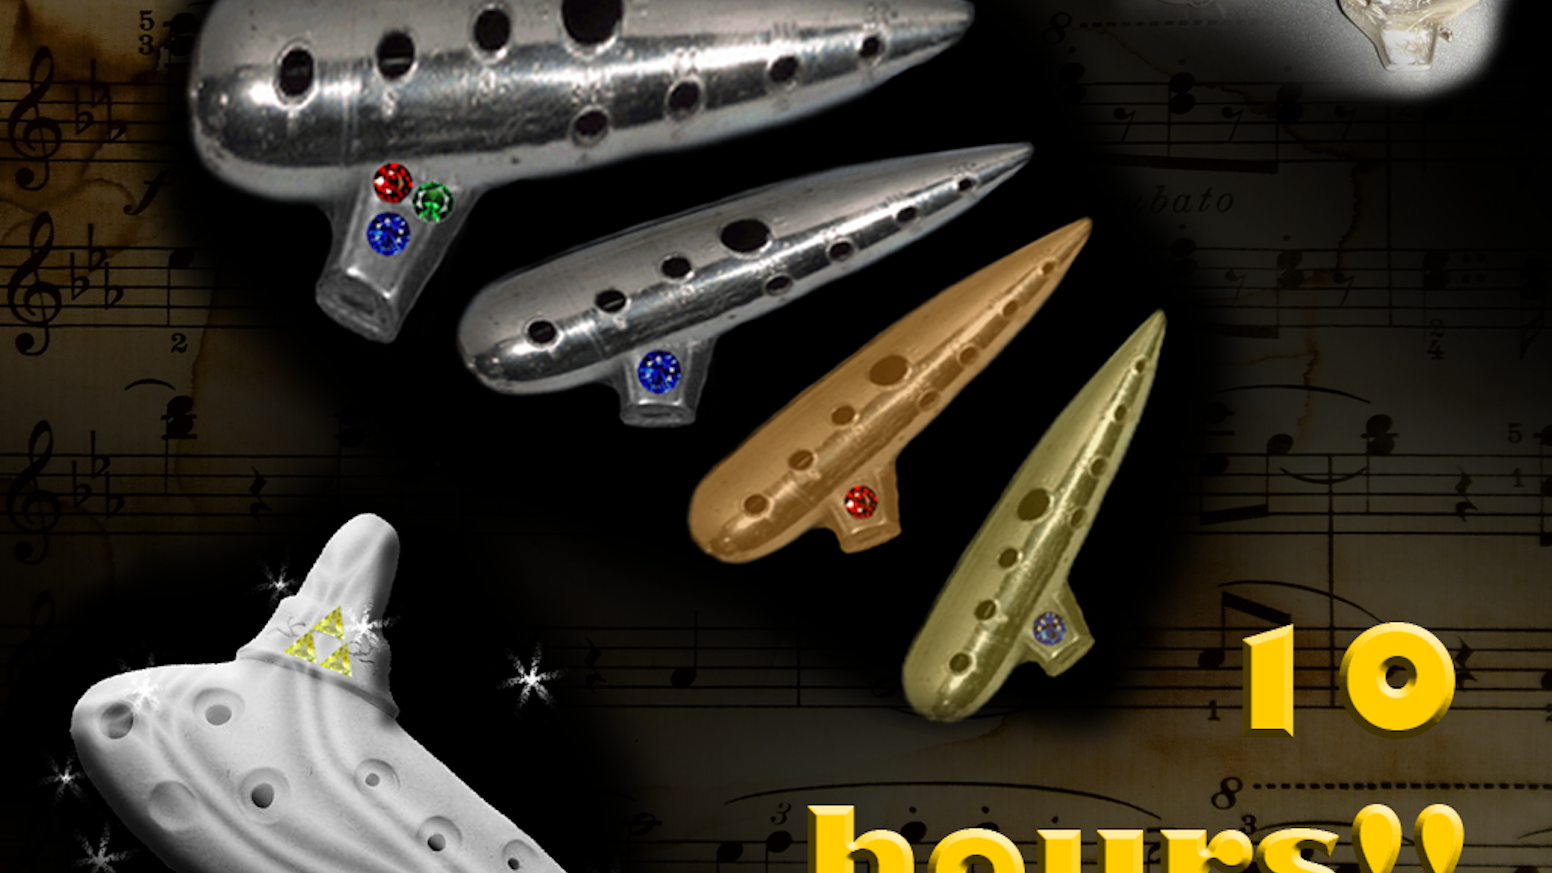 Playable metal ocarina flutes inspired by Zelda : Ocarina of Time (copper, bronze, silver) and gems!